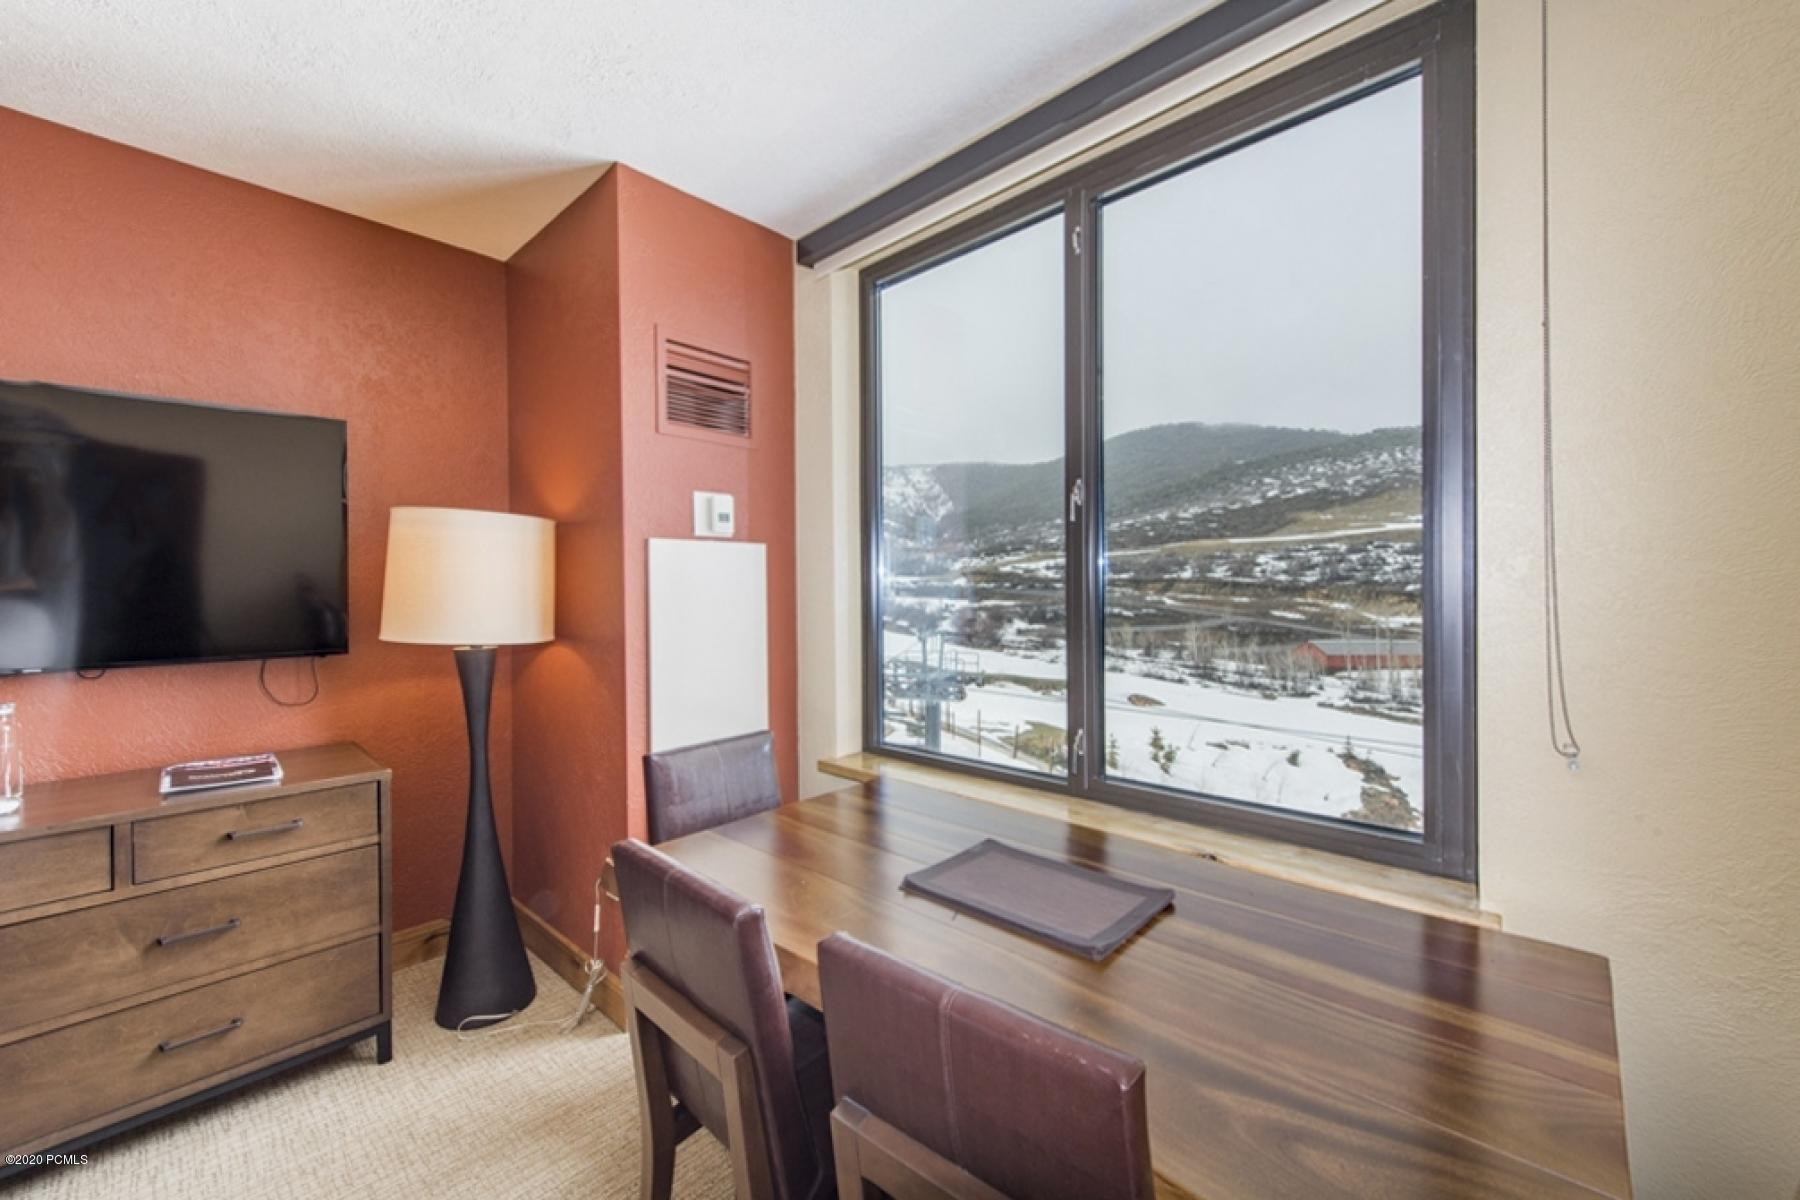 3855 Grand Summit Dr., Park City, Utah 84060, ,1 BathroomBathrooms,Fractional Interest,For Sale,Grand Summit Dr.,20190109112430415765000000